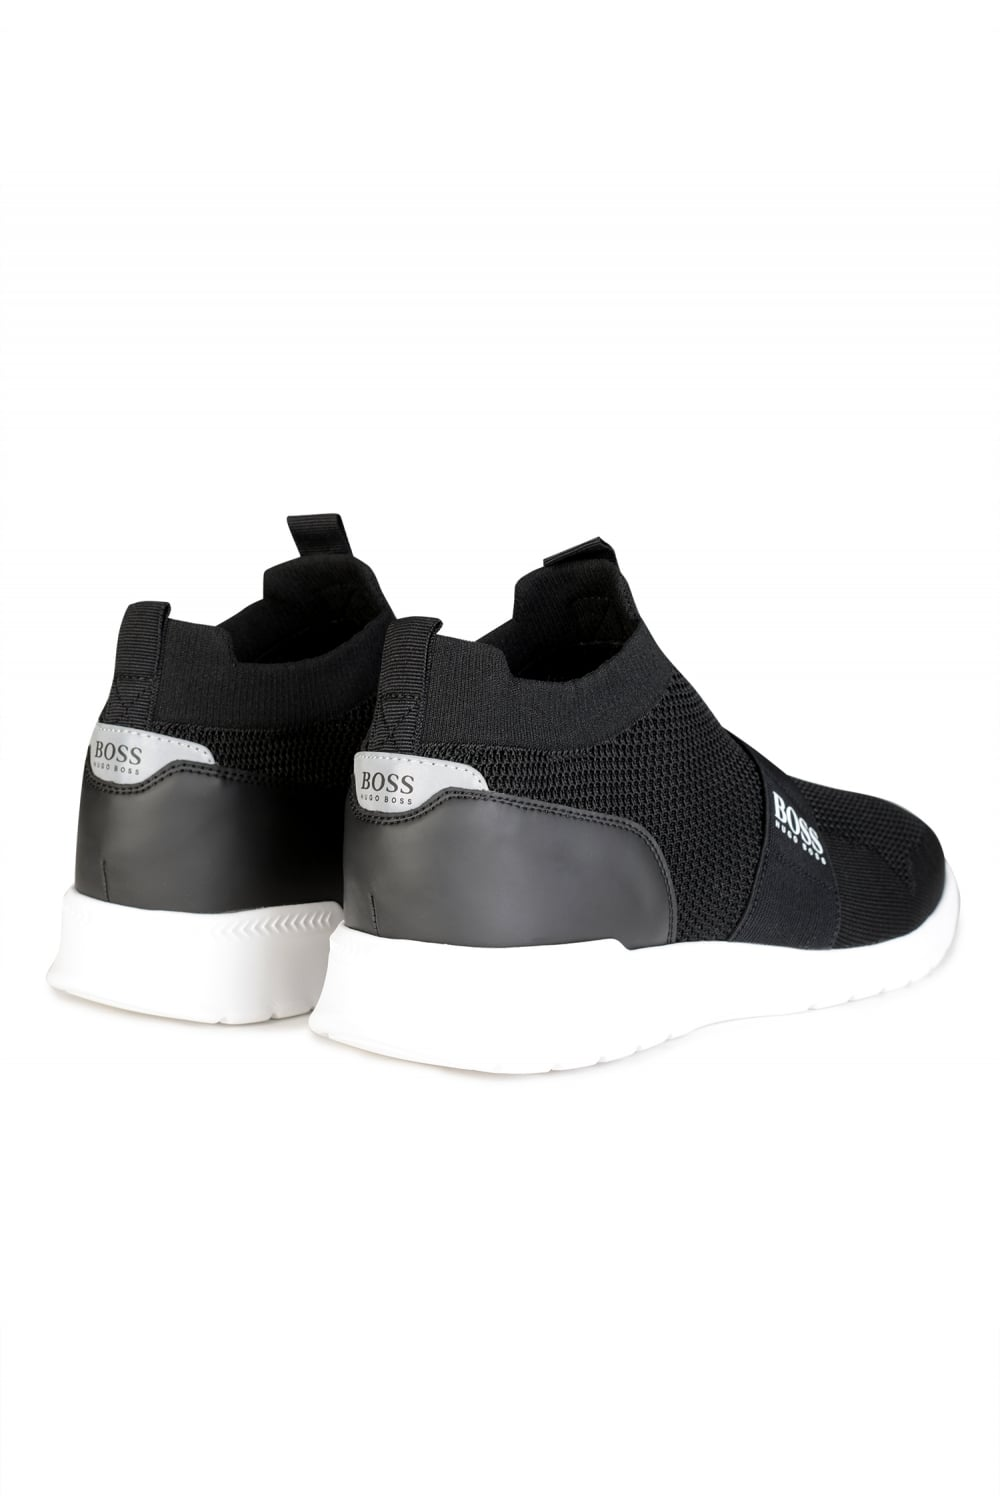 3d2c3bb268c5fc Hugo Boss Extreme Slide On Knit Trainers